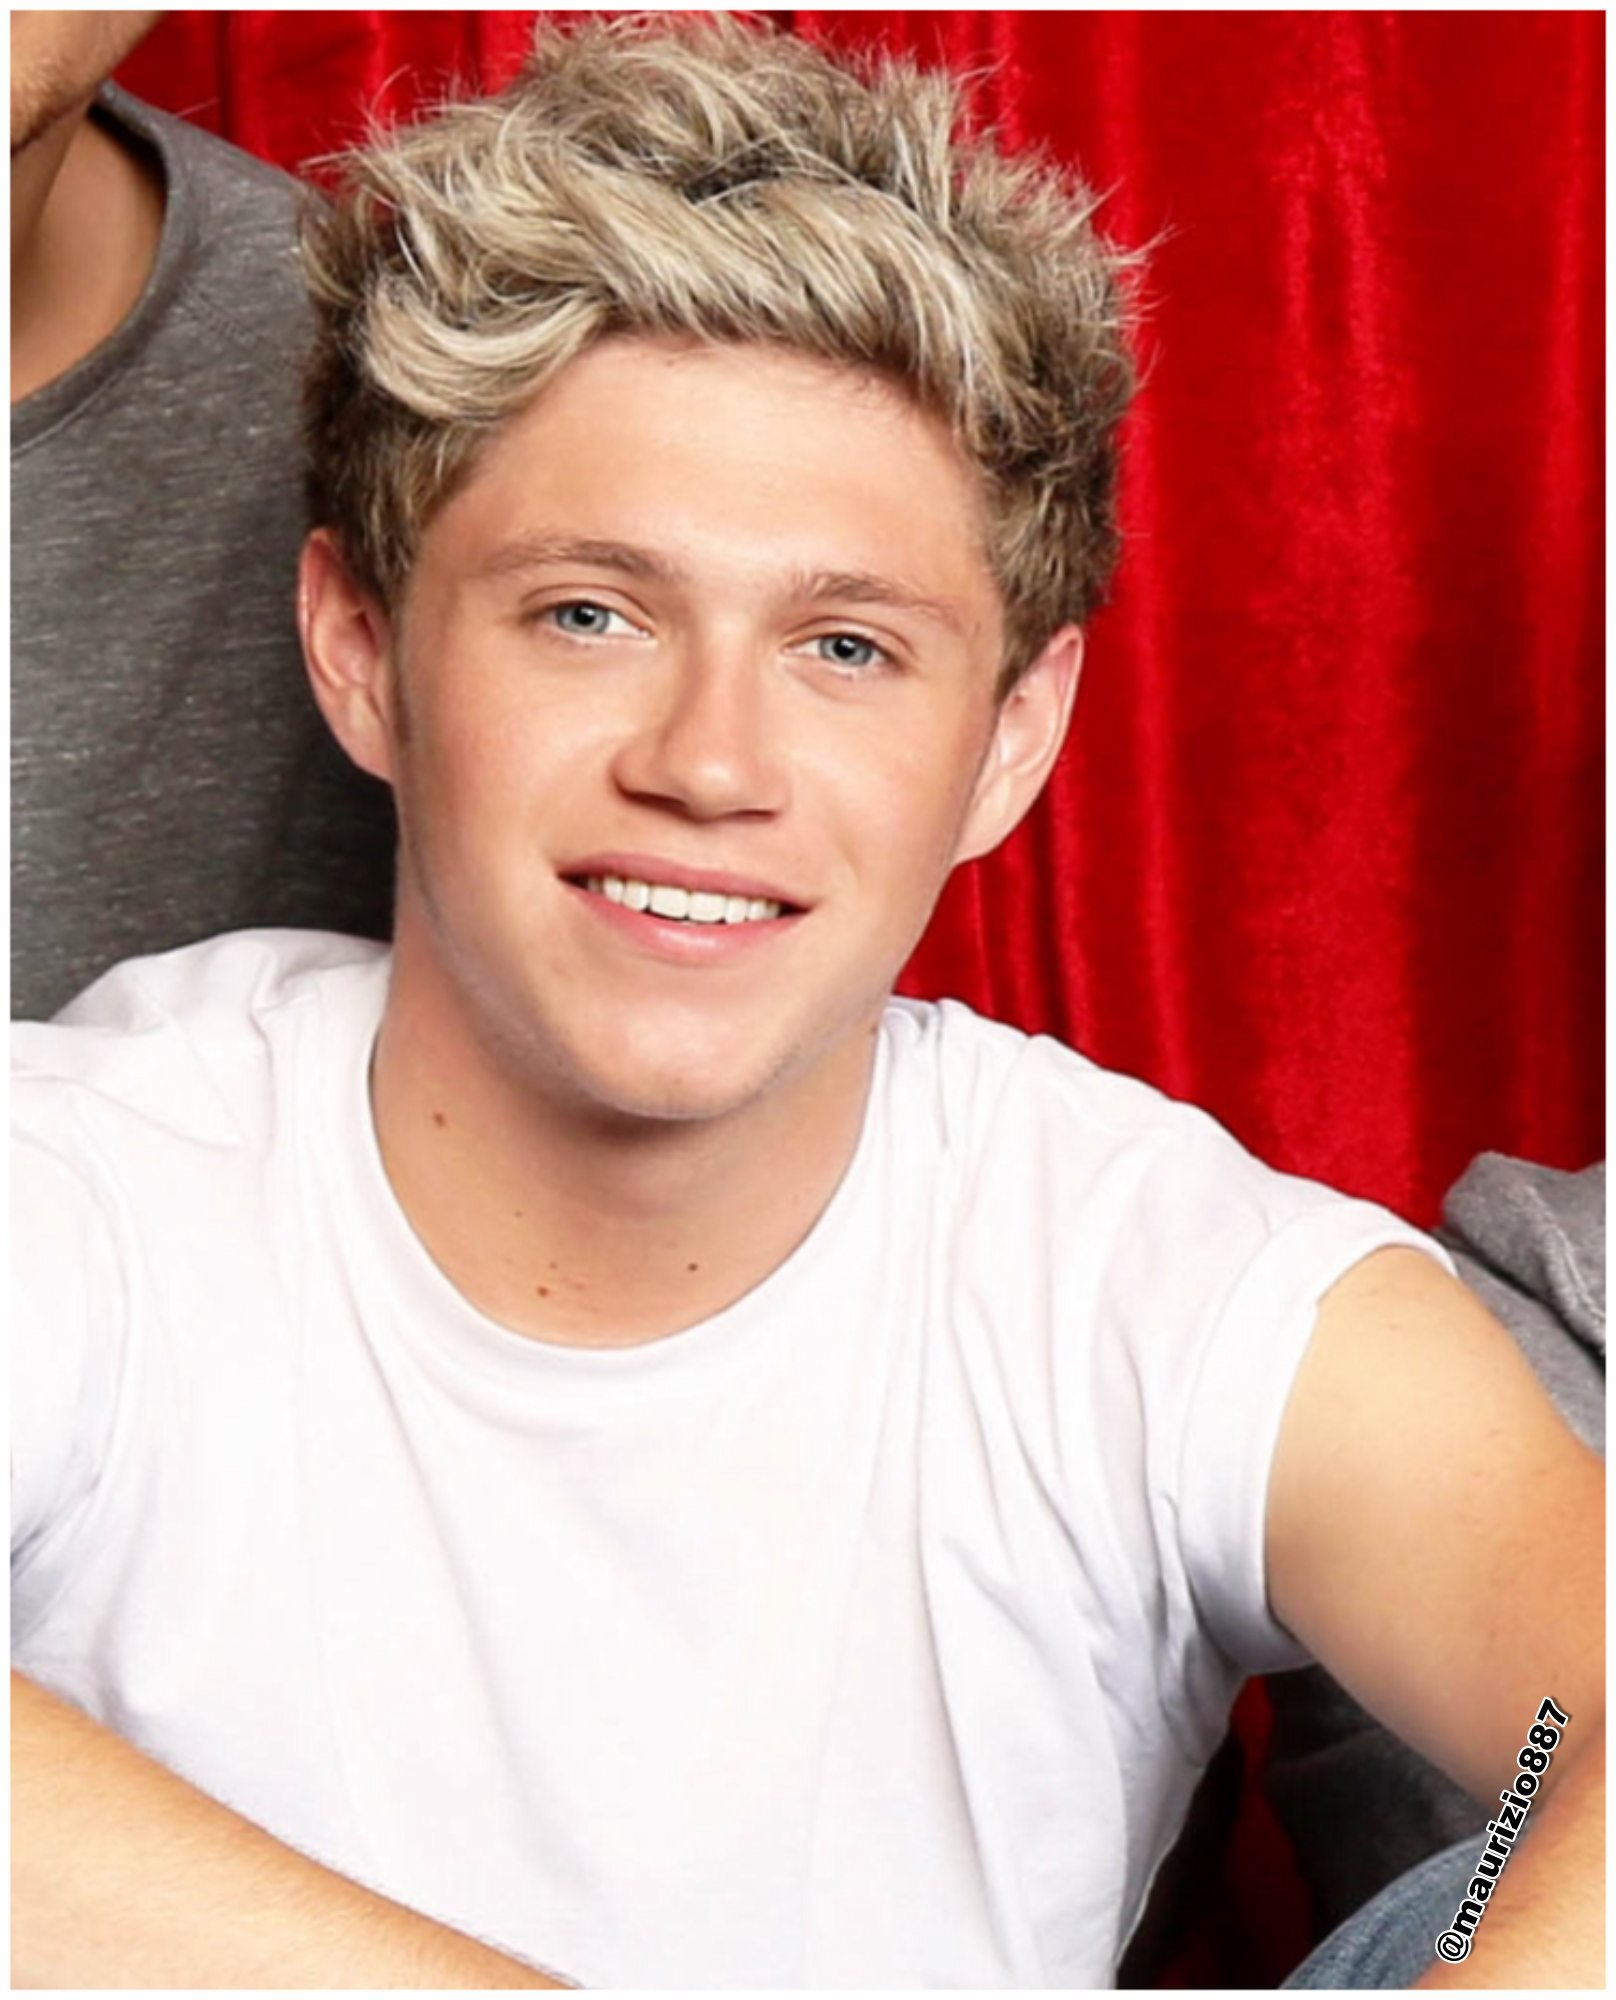 Niall Horan 2013 Photoshoot Adopted by One ...